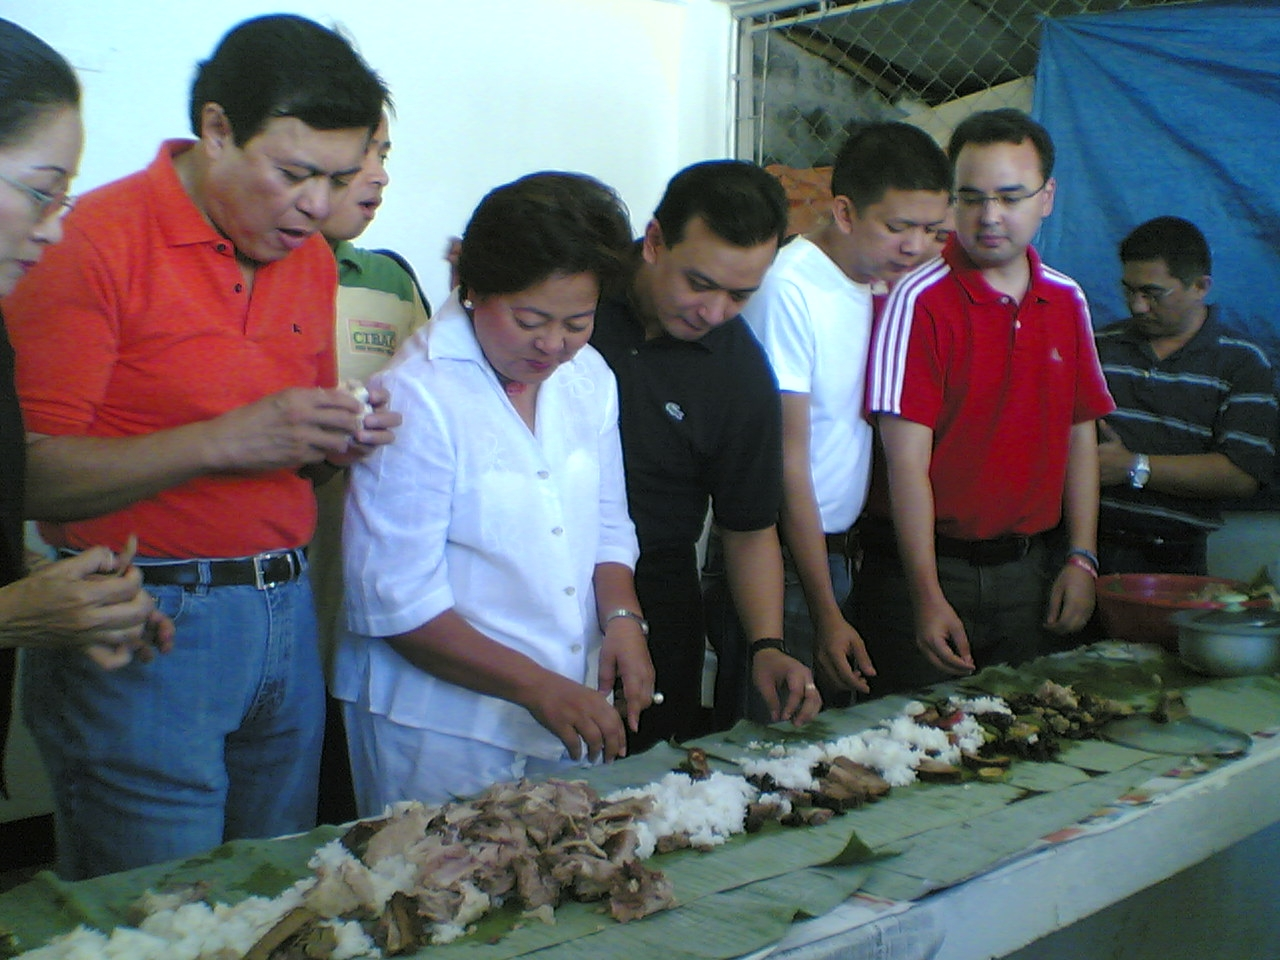 Genuine Opposition bets Villar, Roco, Coseteng, Escudero, Cayetano, Trillanes in a boodle fight back in 2007. Shot by Ellen Tordesillas.